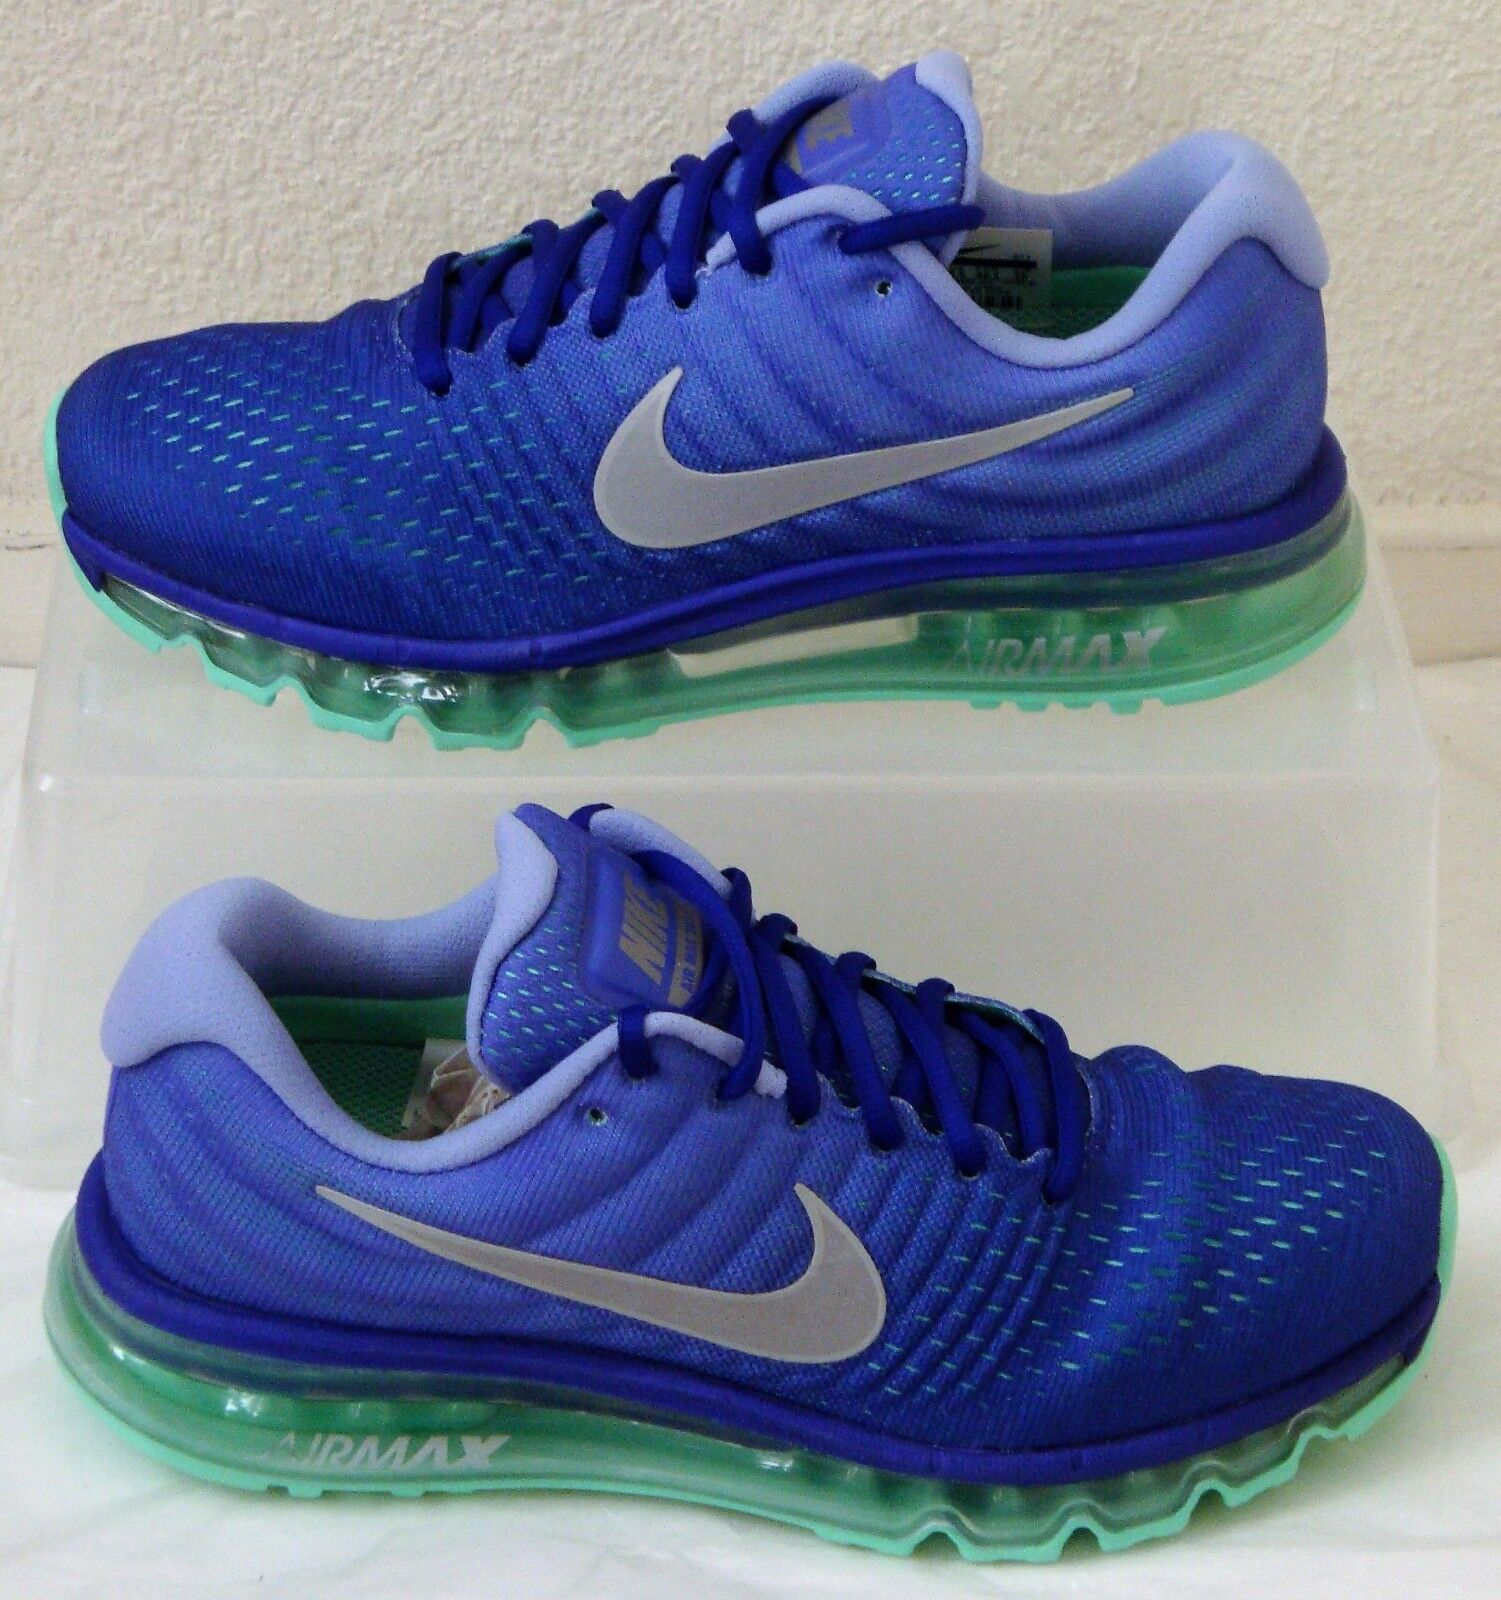 New Nike Chaussures Air Max 2018 Persian Concord femmes US